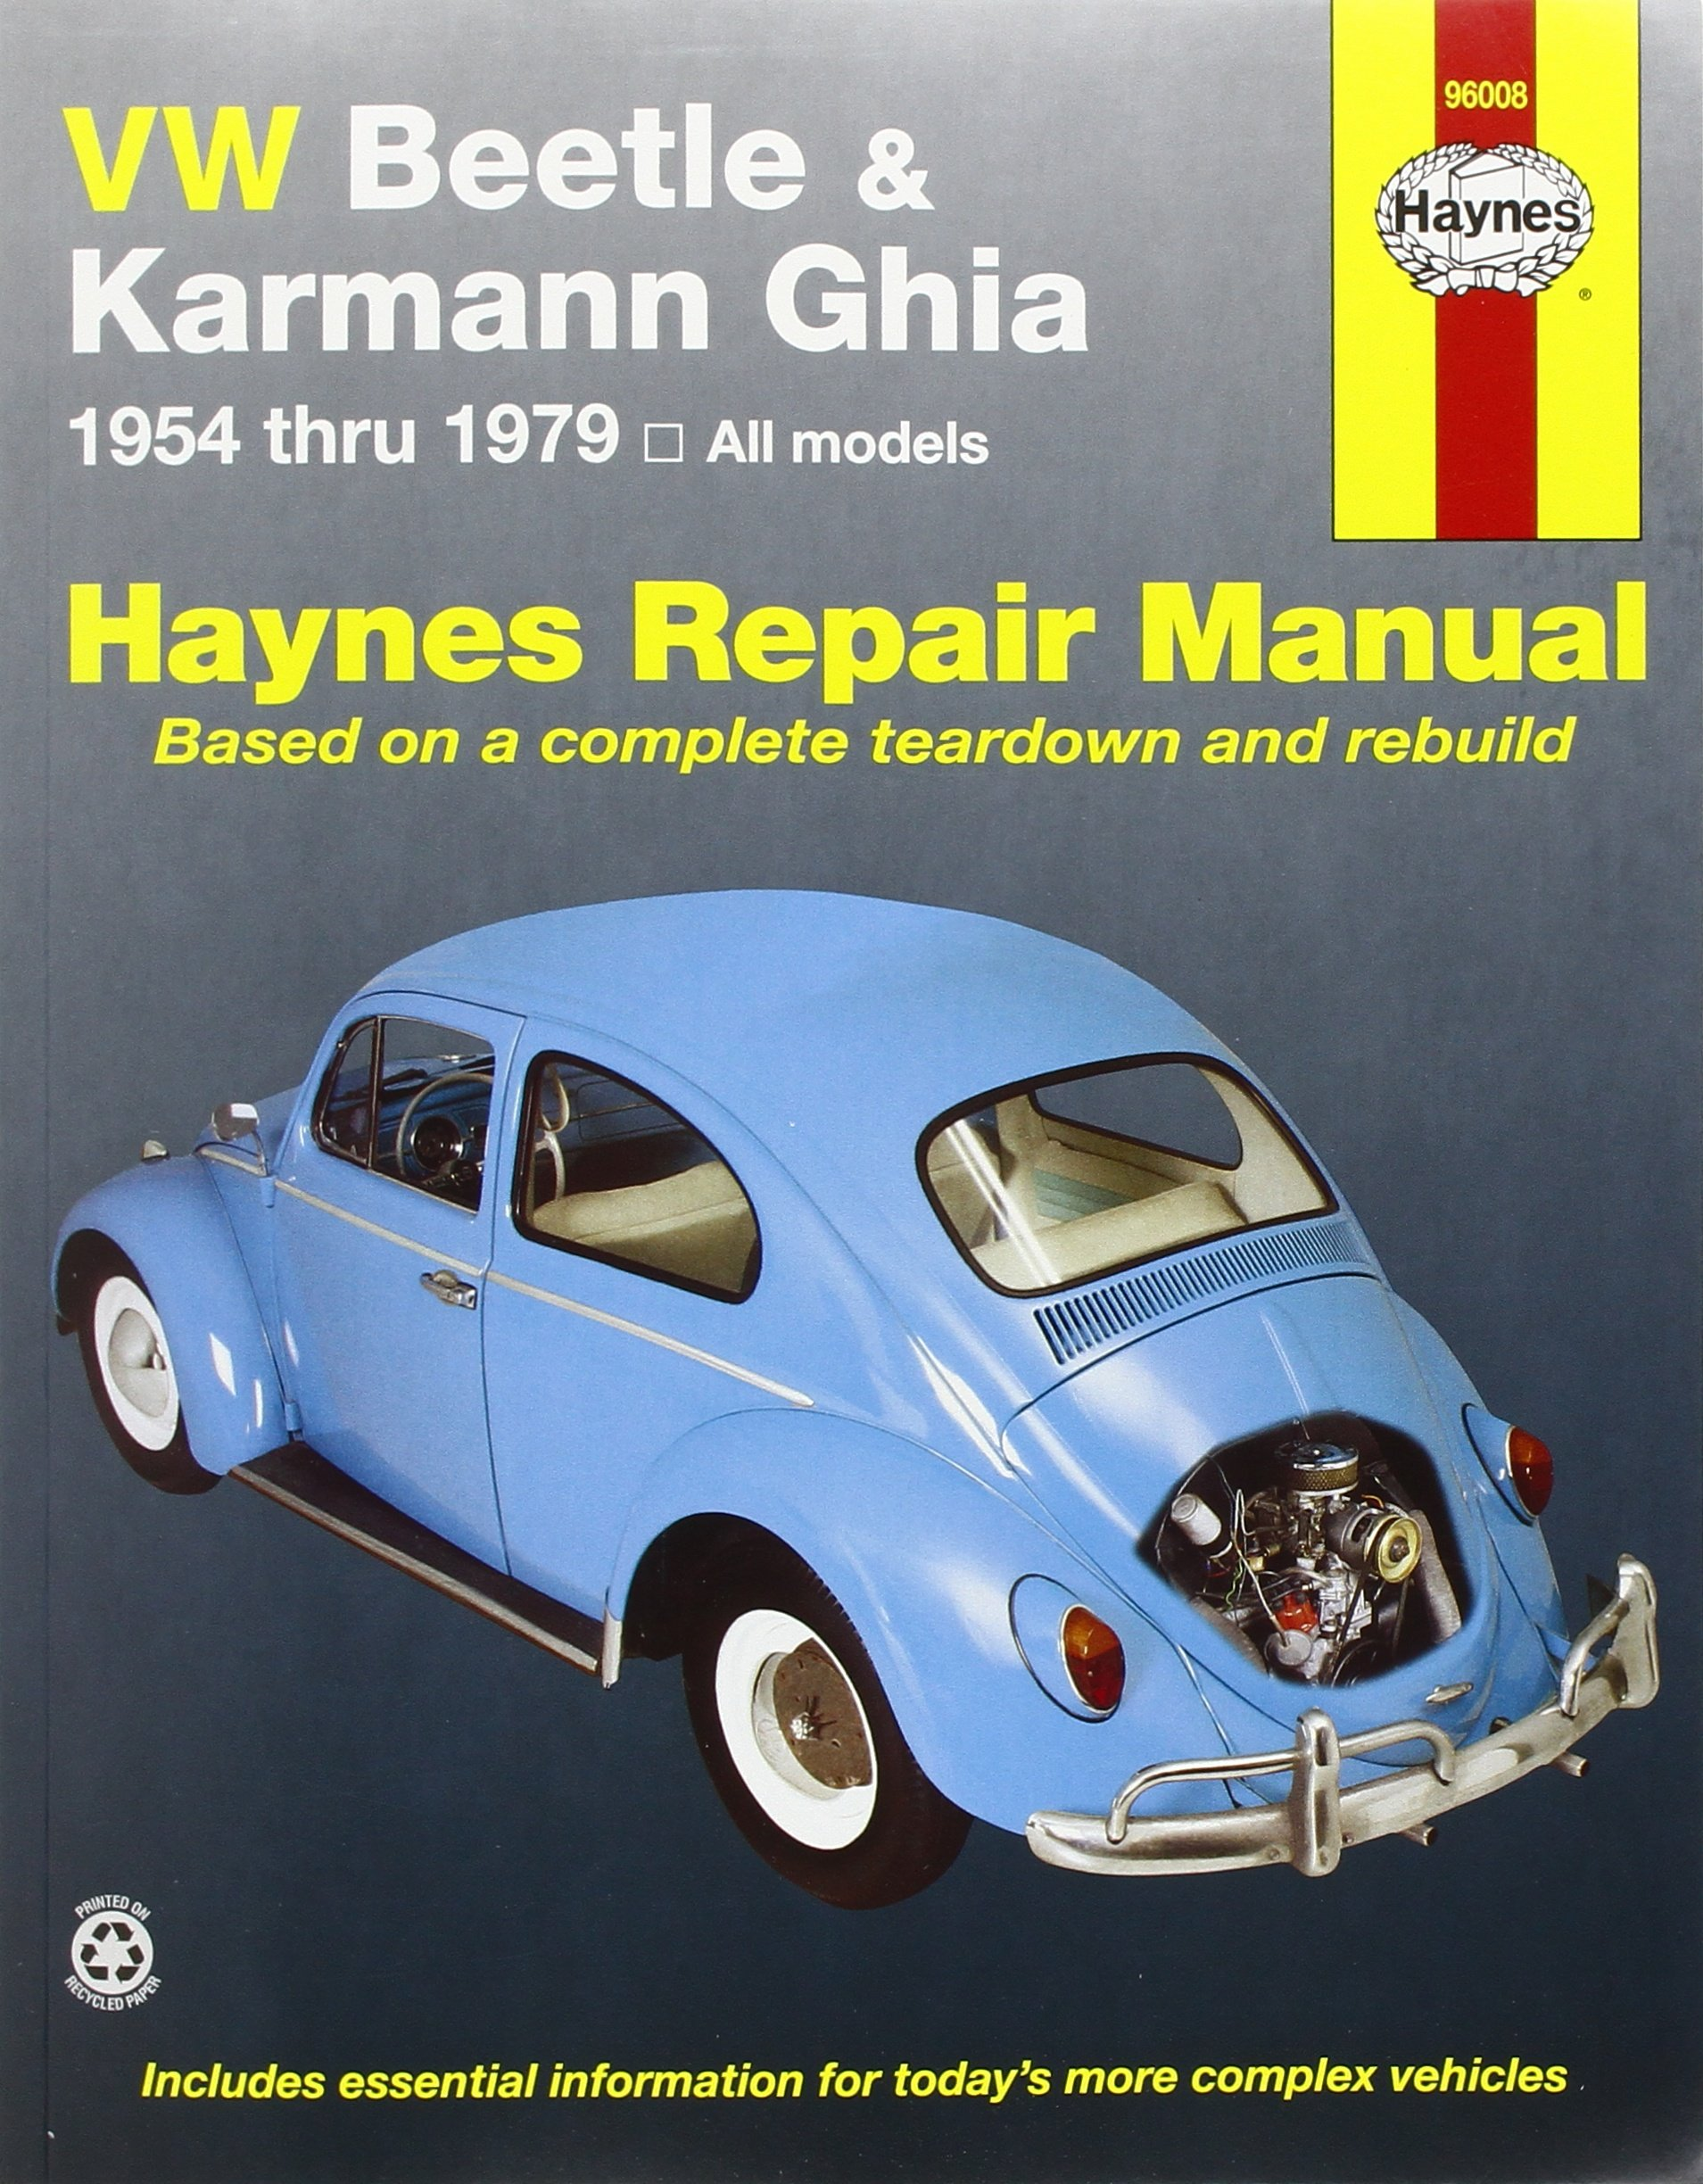 vw beetle karmann ghia 54 79 haynes automotive repair manuals rh amazon co uk haynes repair manuals online free haynes repair manuals download free